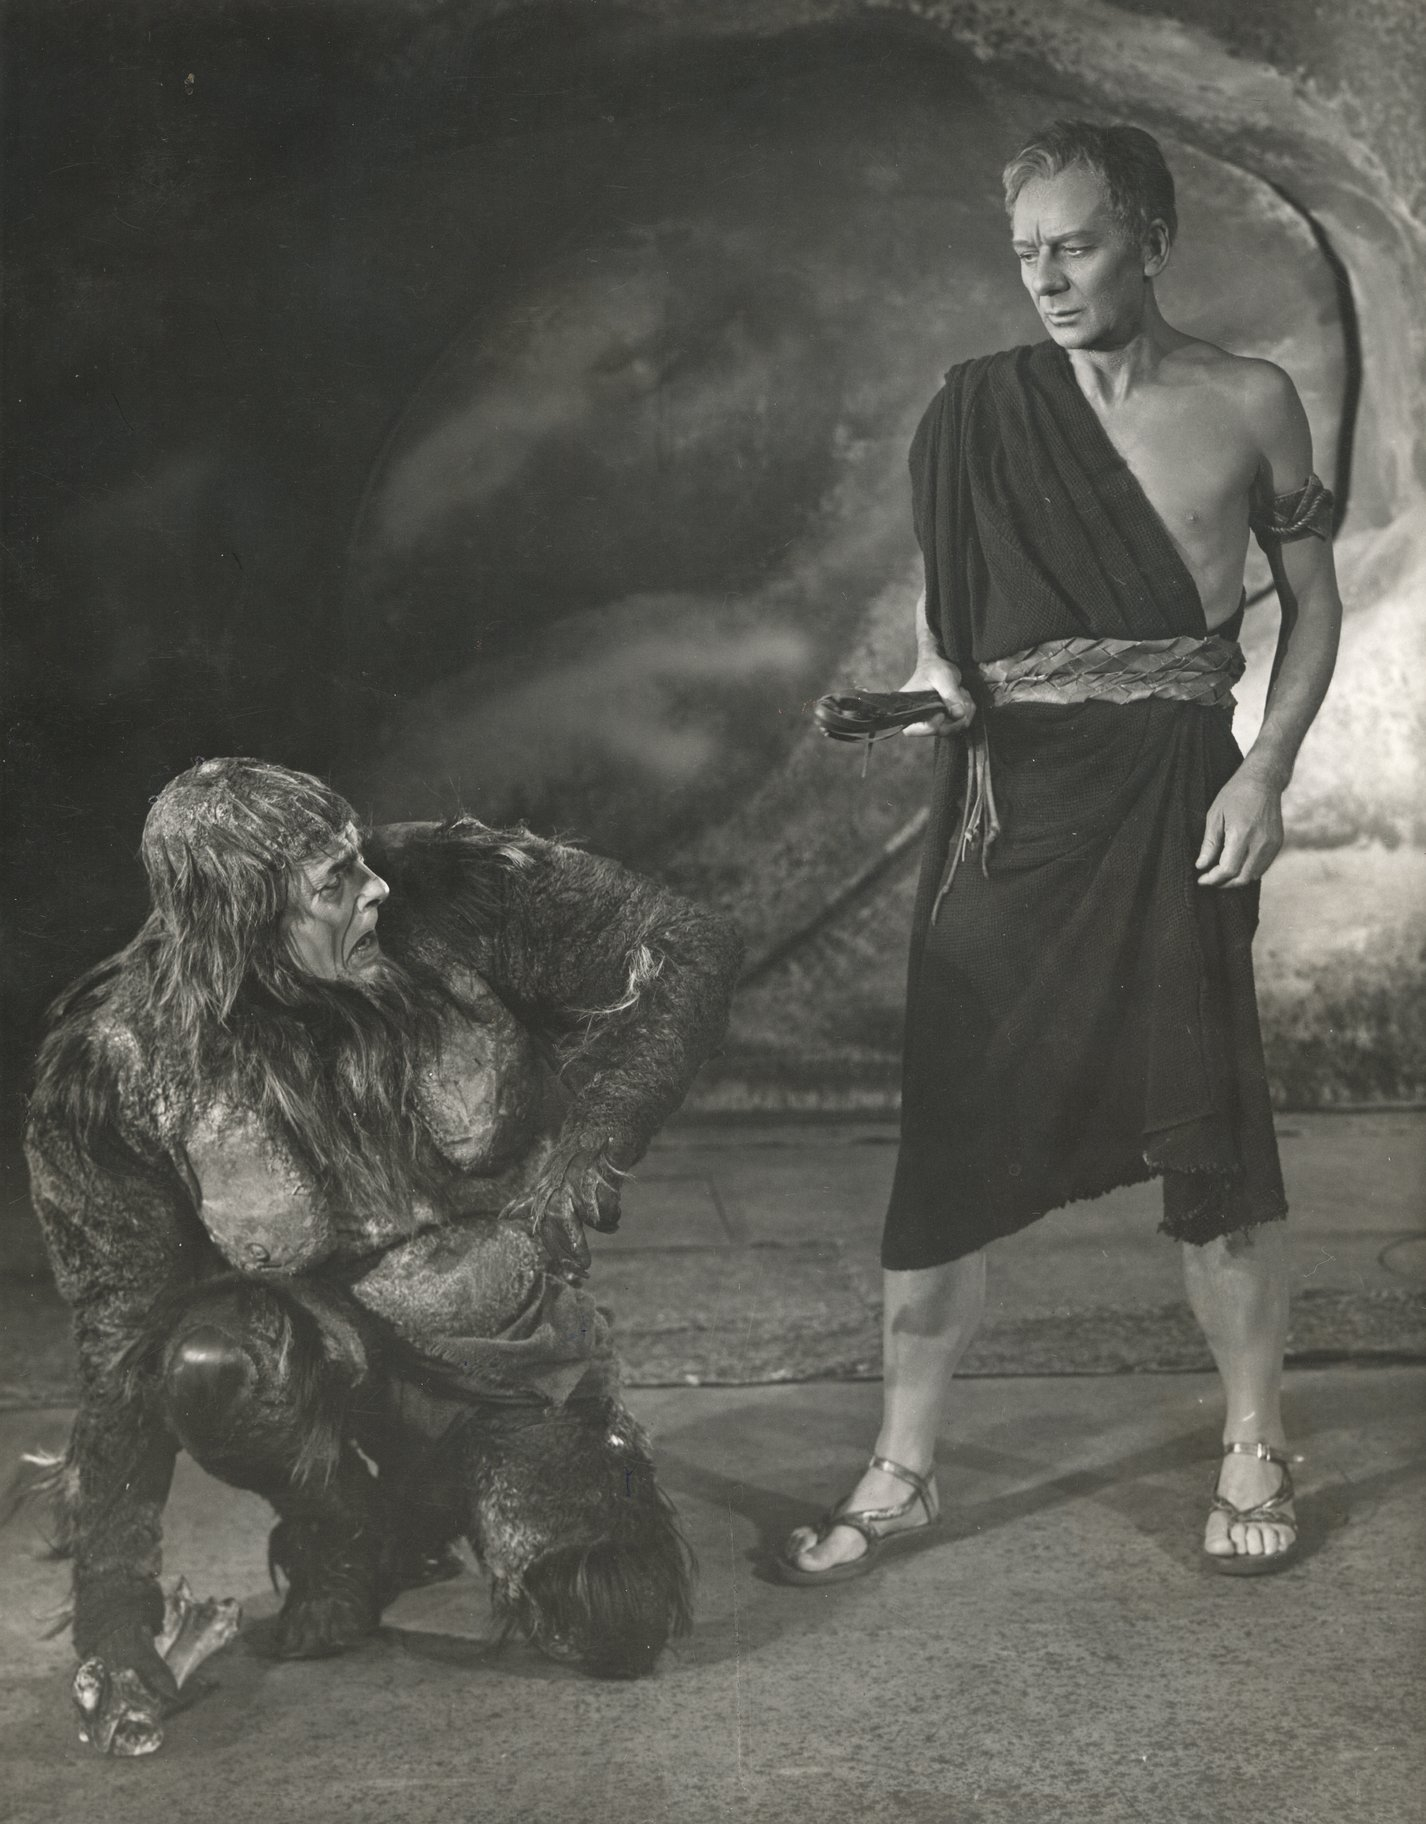 Caliban crouches next to Prospero.